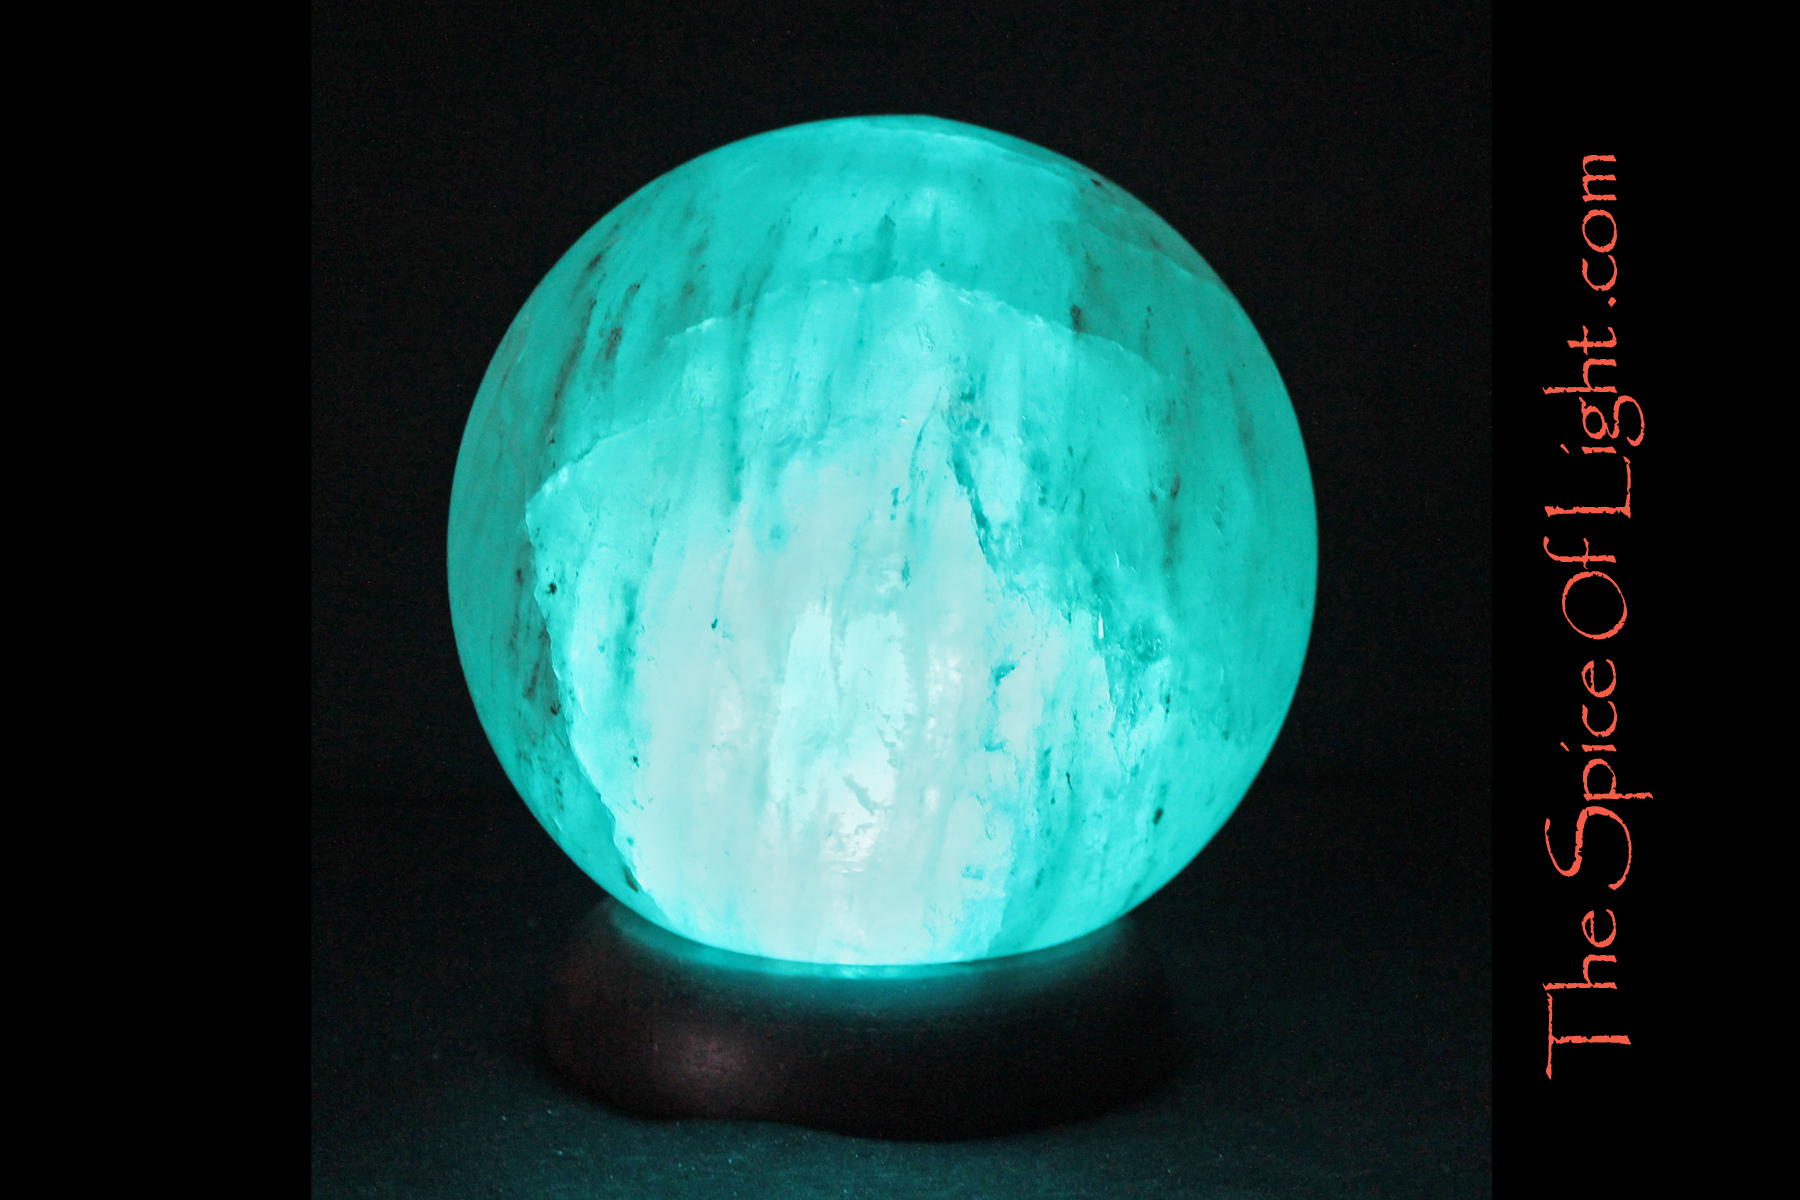 Salt Lamps Blue : Neptune Salt Sphere Himalayan salt lamp, blue planet or globe sculpture The Spice of Light